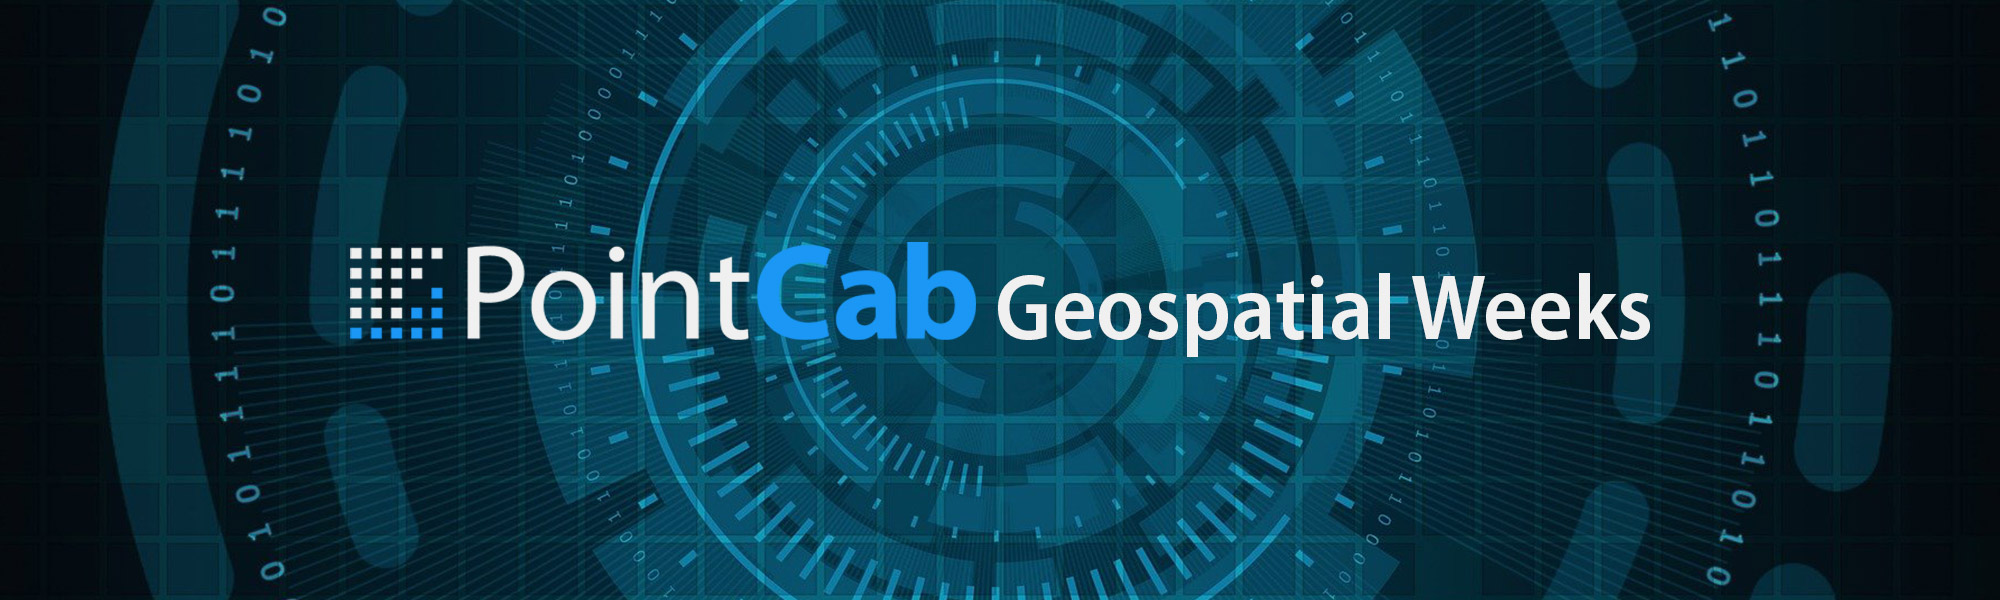 pointcab-geospatial-weeks